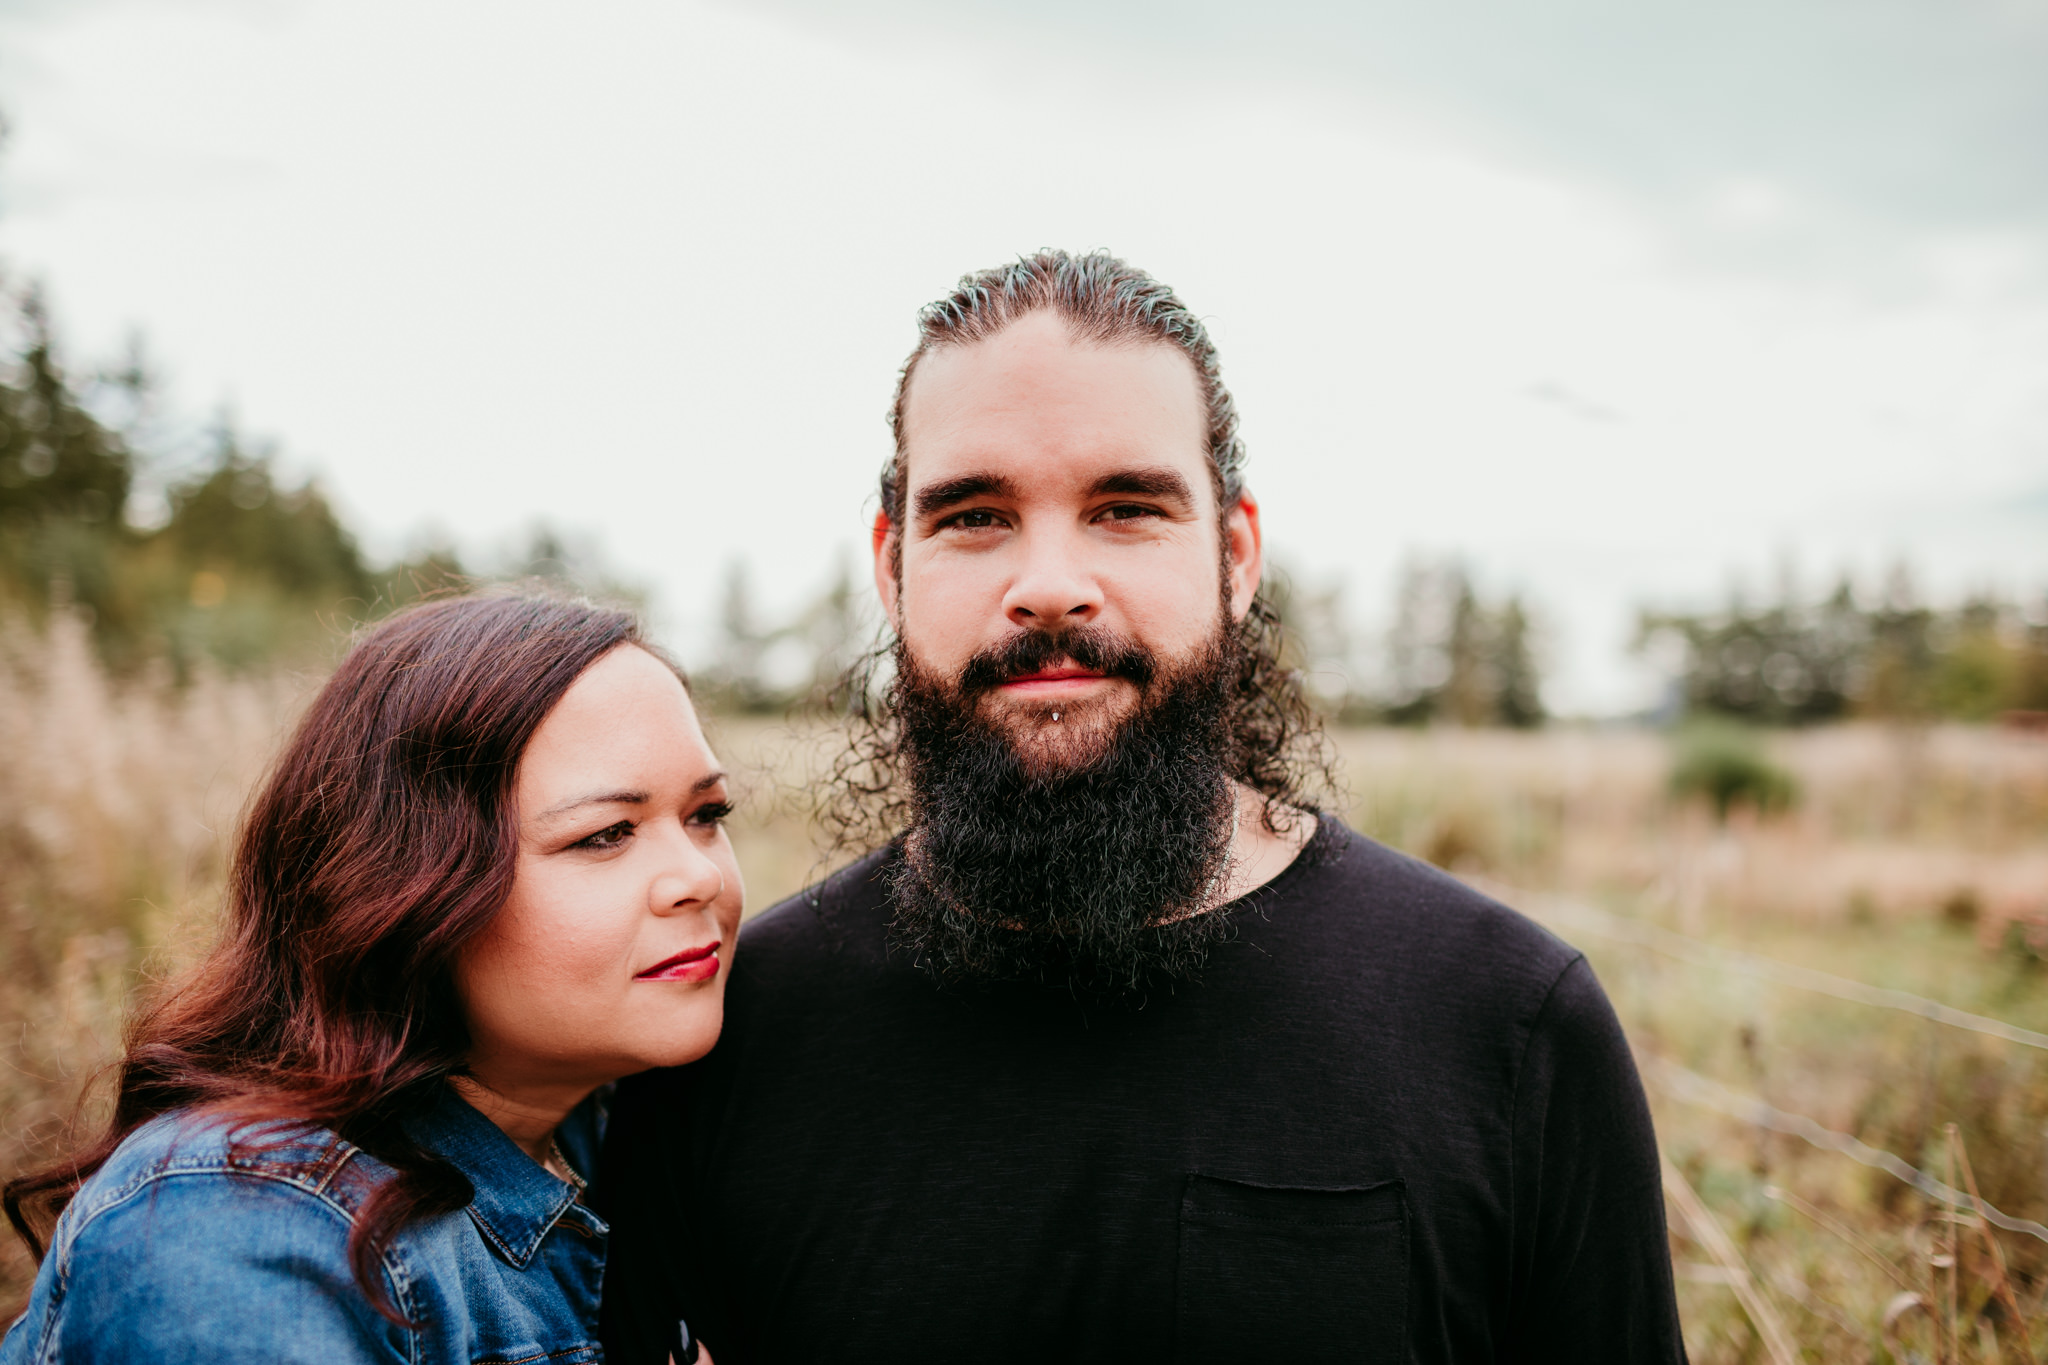 guy looking straight on at camera with beard and girl resting head on his shoulder looking into the distance